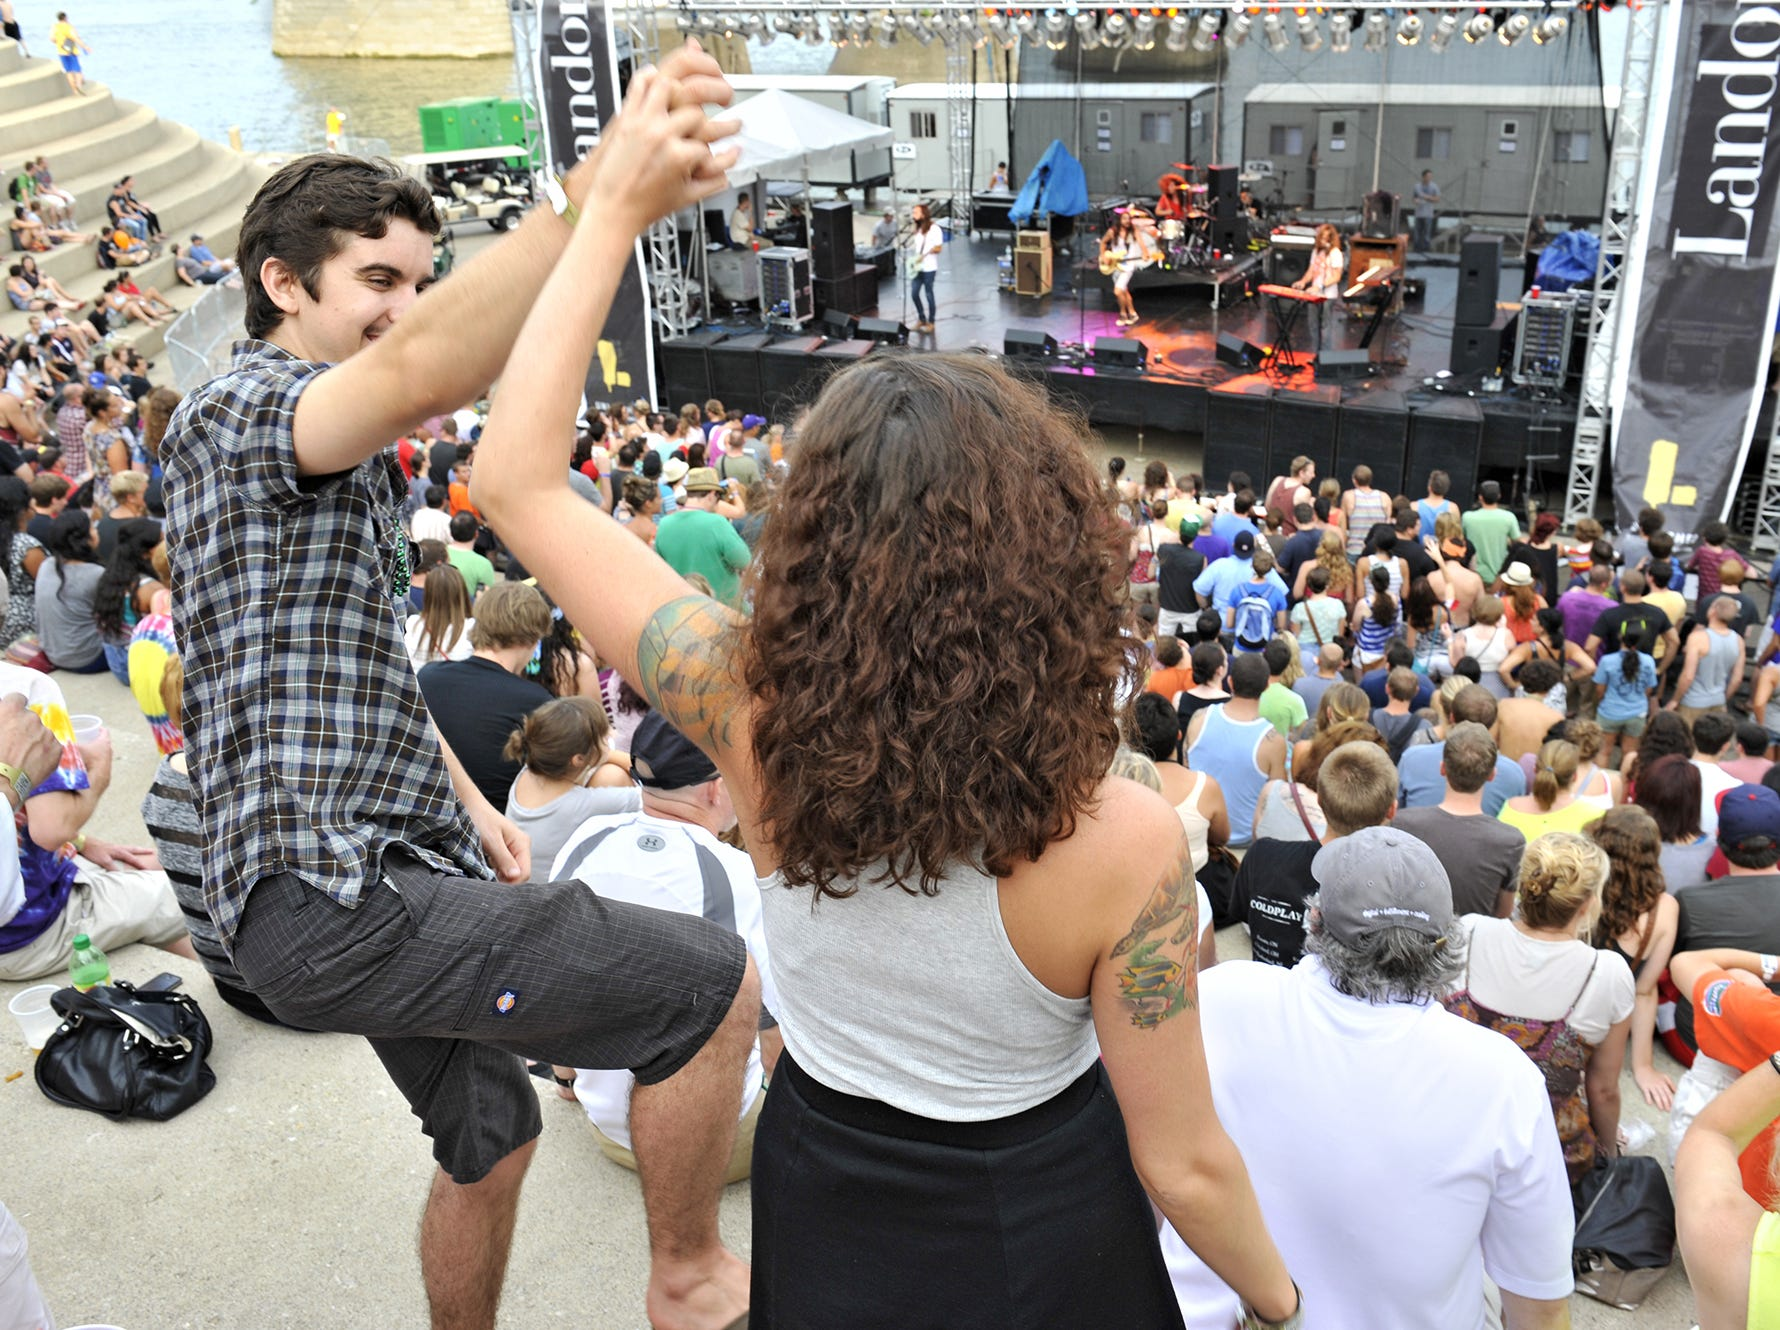 Josh Chal and Ashley Goodridge dance to Bright Light Social Hour at last year?s festival. Promoters expect bigger crowds this year. David Sorcher / File Enquirer file METROMIX JULY 13, 2012 - BUNBURY MUSIC FEST - Saturday's scattered showers did little to deter the fun at the second day of the Bunbury Music Festival, a three day festival featuring over 100 band and DJs on five different stages spread along the Ohio River at Sawyer's Point and Yeatsman Cove. Josh Chal and Ashley Goodridge dance to The Bright Light Social Hour at the Landor Stage.